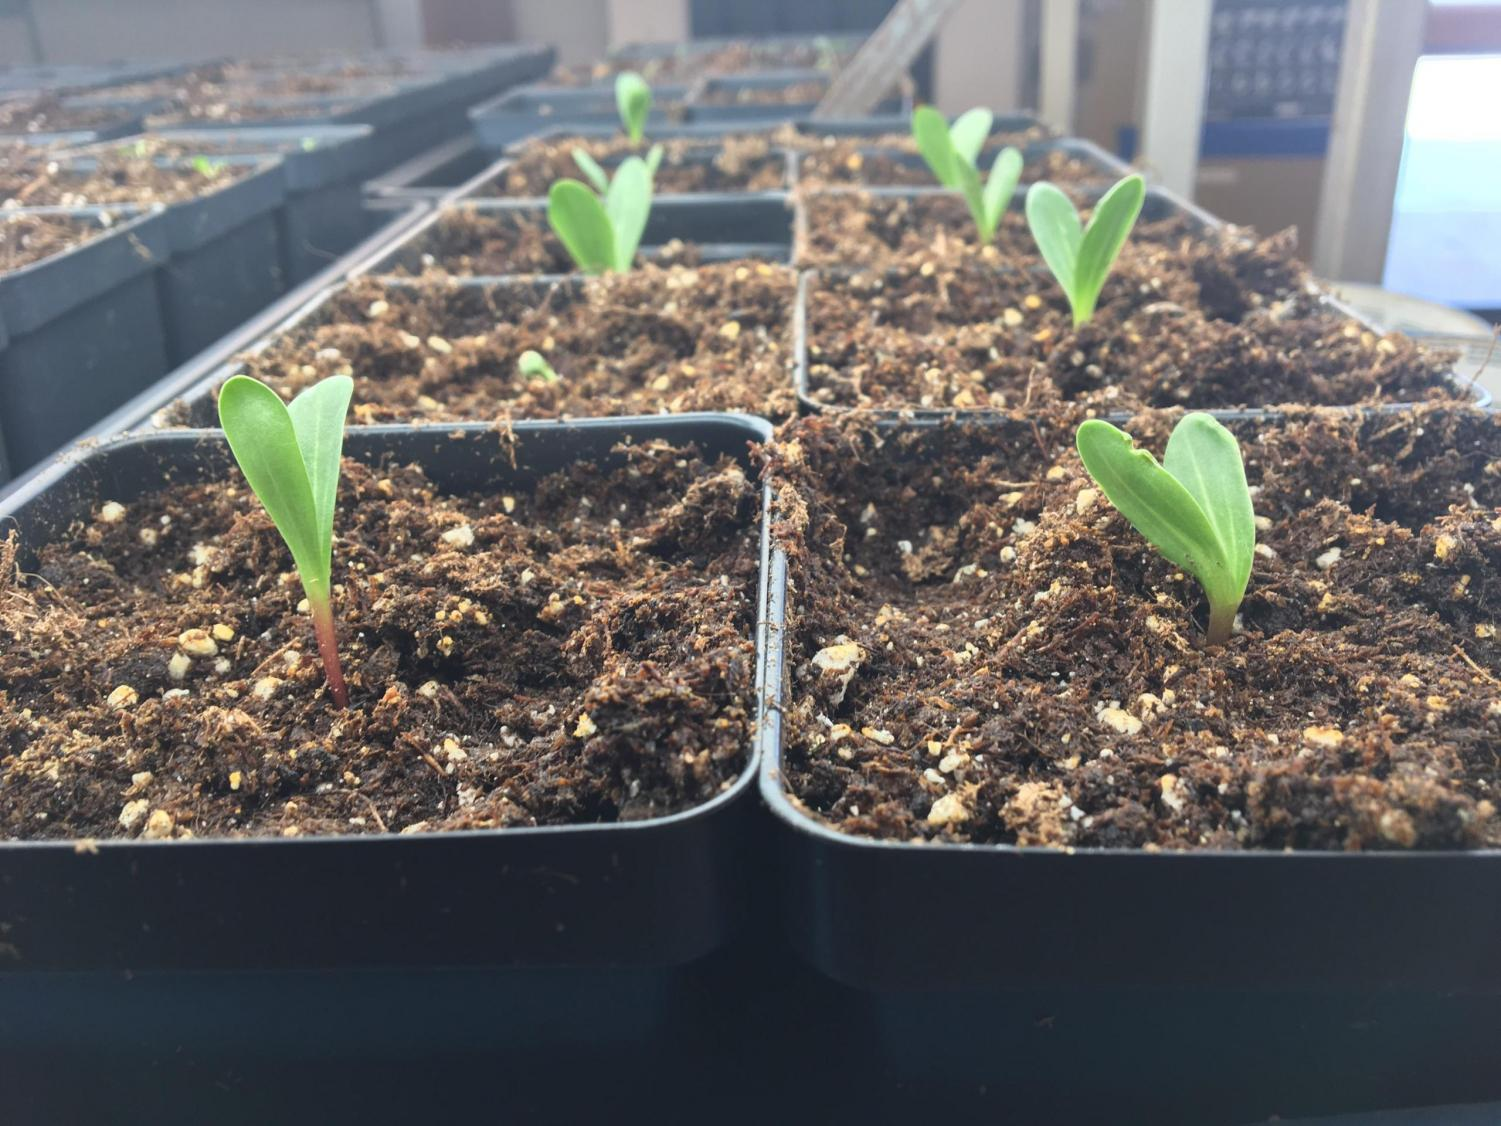 Students in science teacher Glenn Boettcher's wildlife course are currently growing plants in the school greenhouse. There is an array of environmental classes offered at the high school, even including an environmental club.